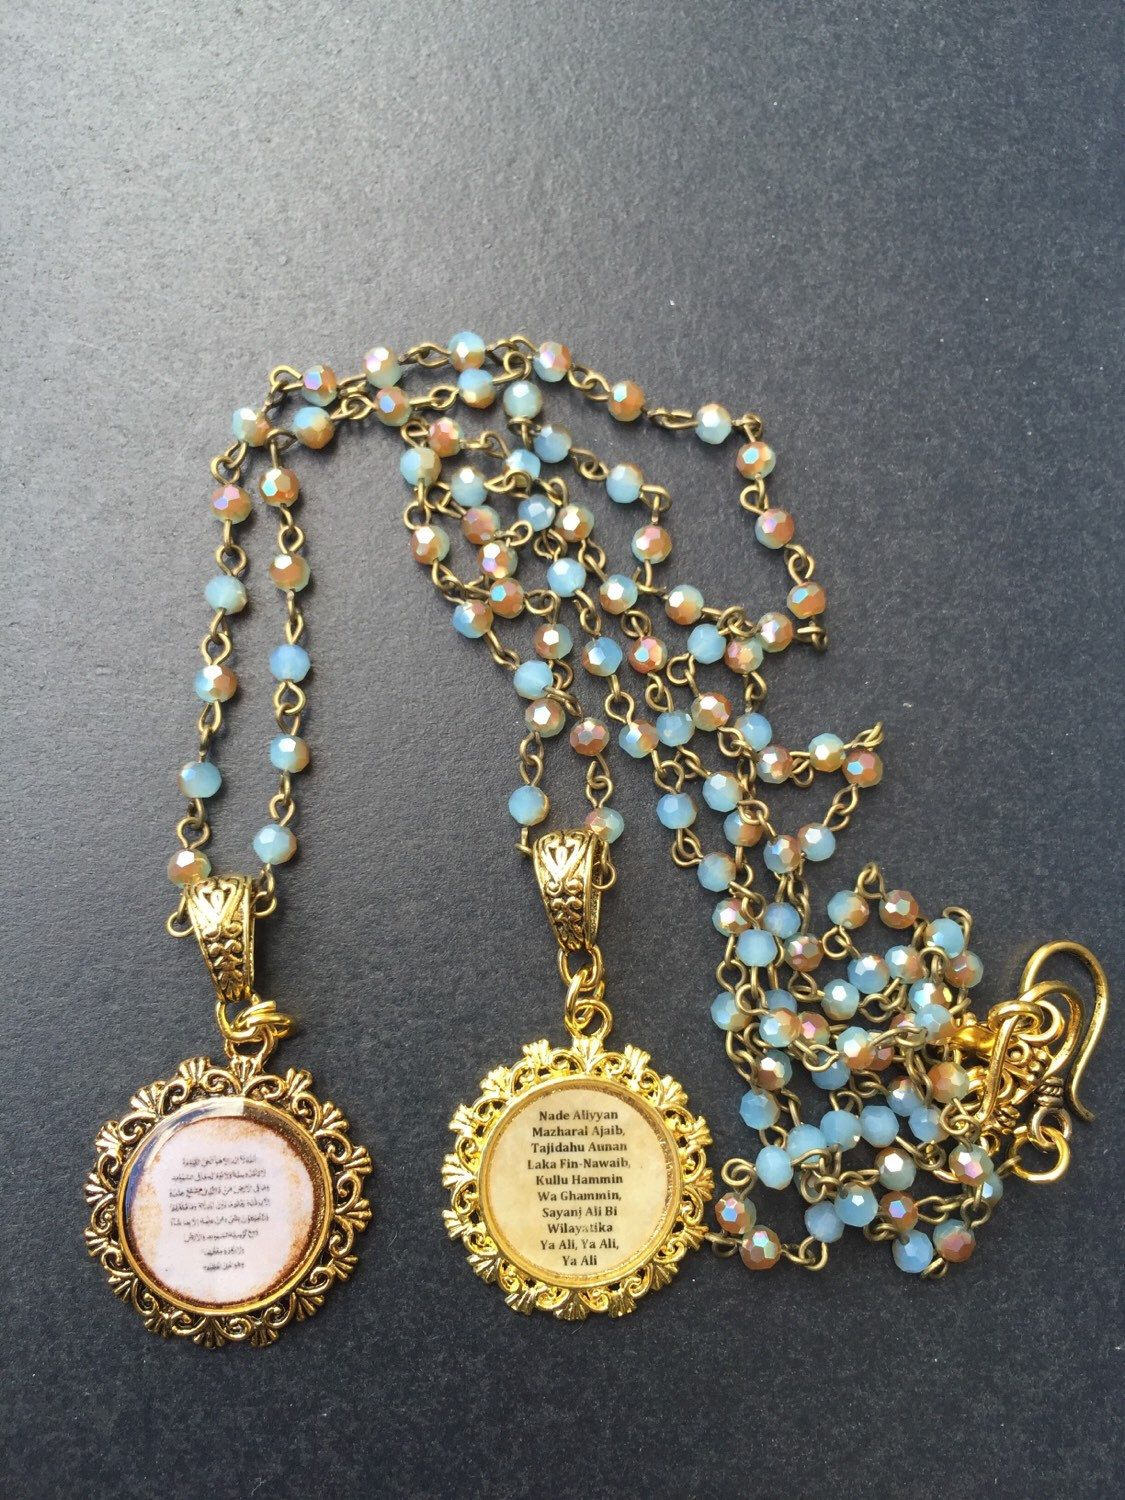 A personal favorite from my etsy shop httpsetsylisting a handmade locket with either the nade ali prayer or ayatul kursi prayer paired with a delicate crystal necklace aloadofball Choice Image